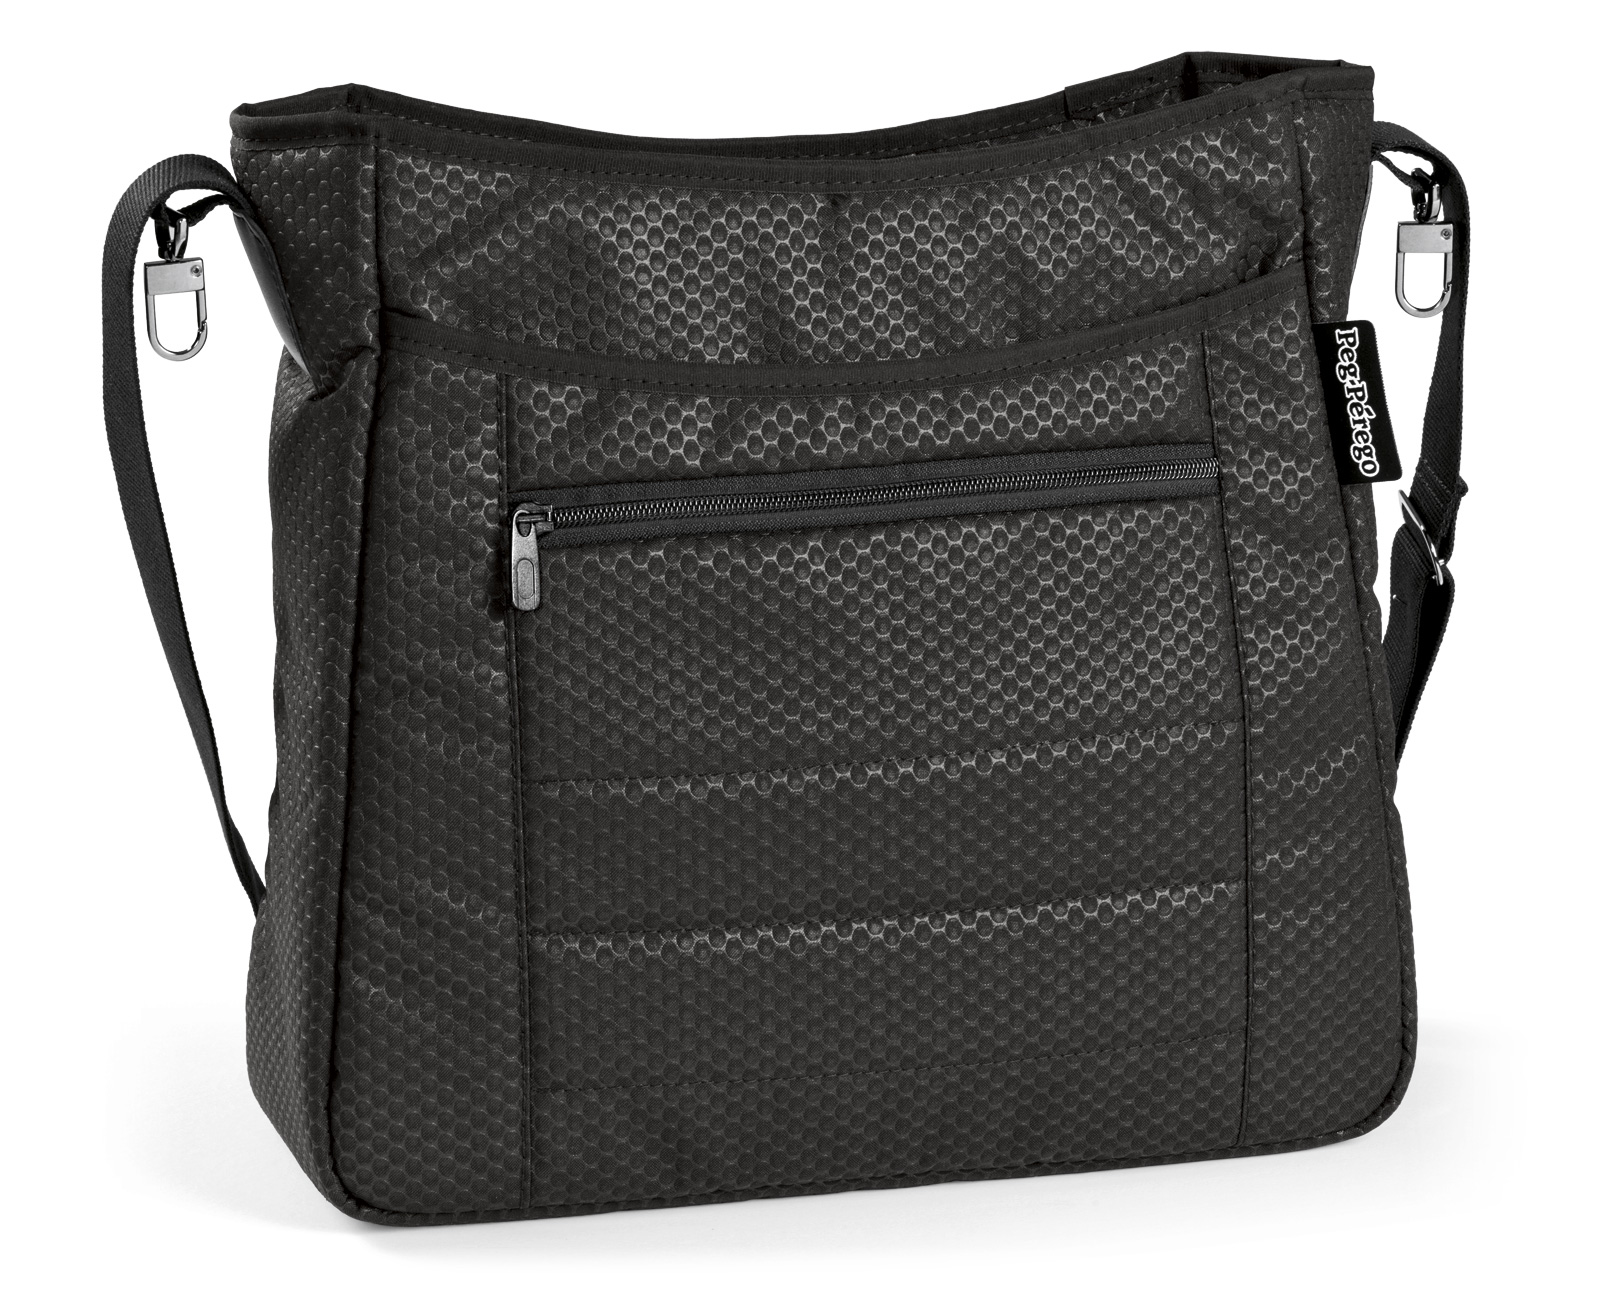 Сумка для колясок Peg Perego Borsa Mamma Bloom Black